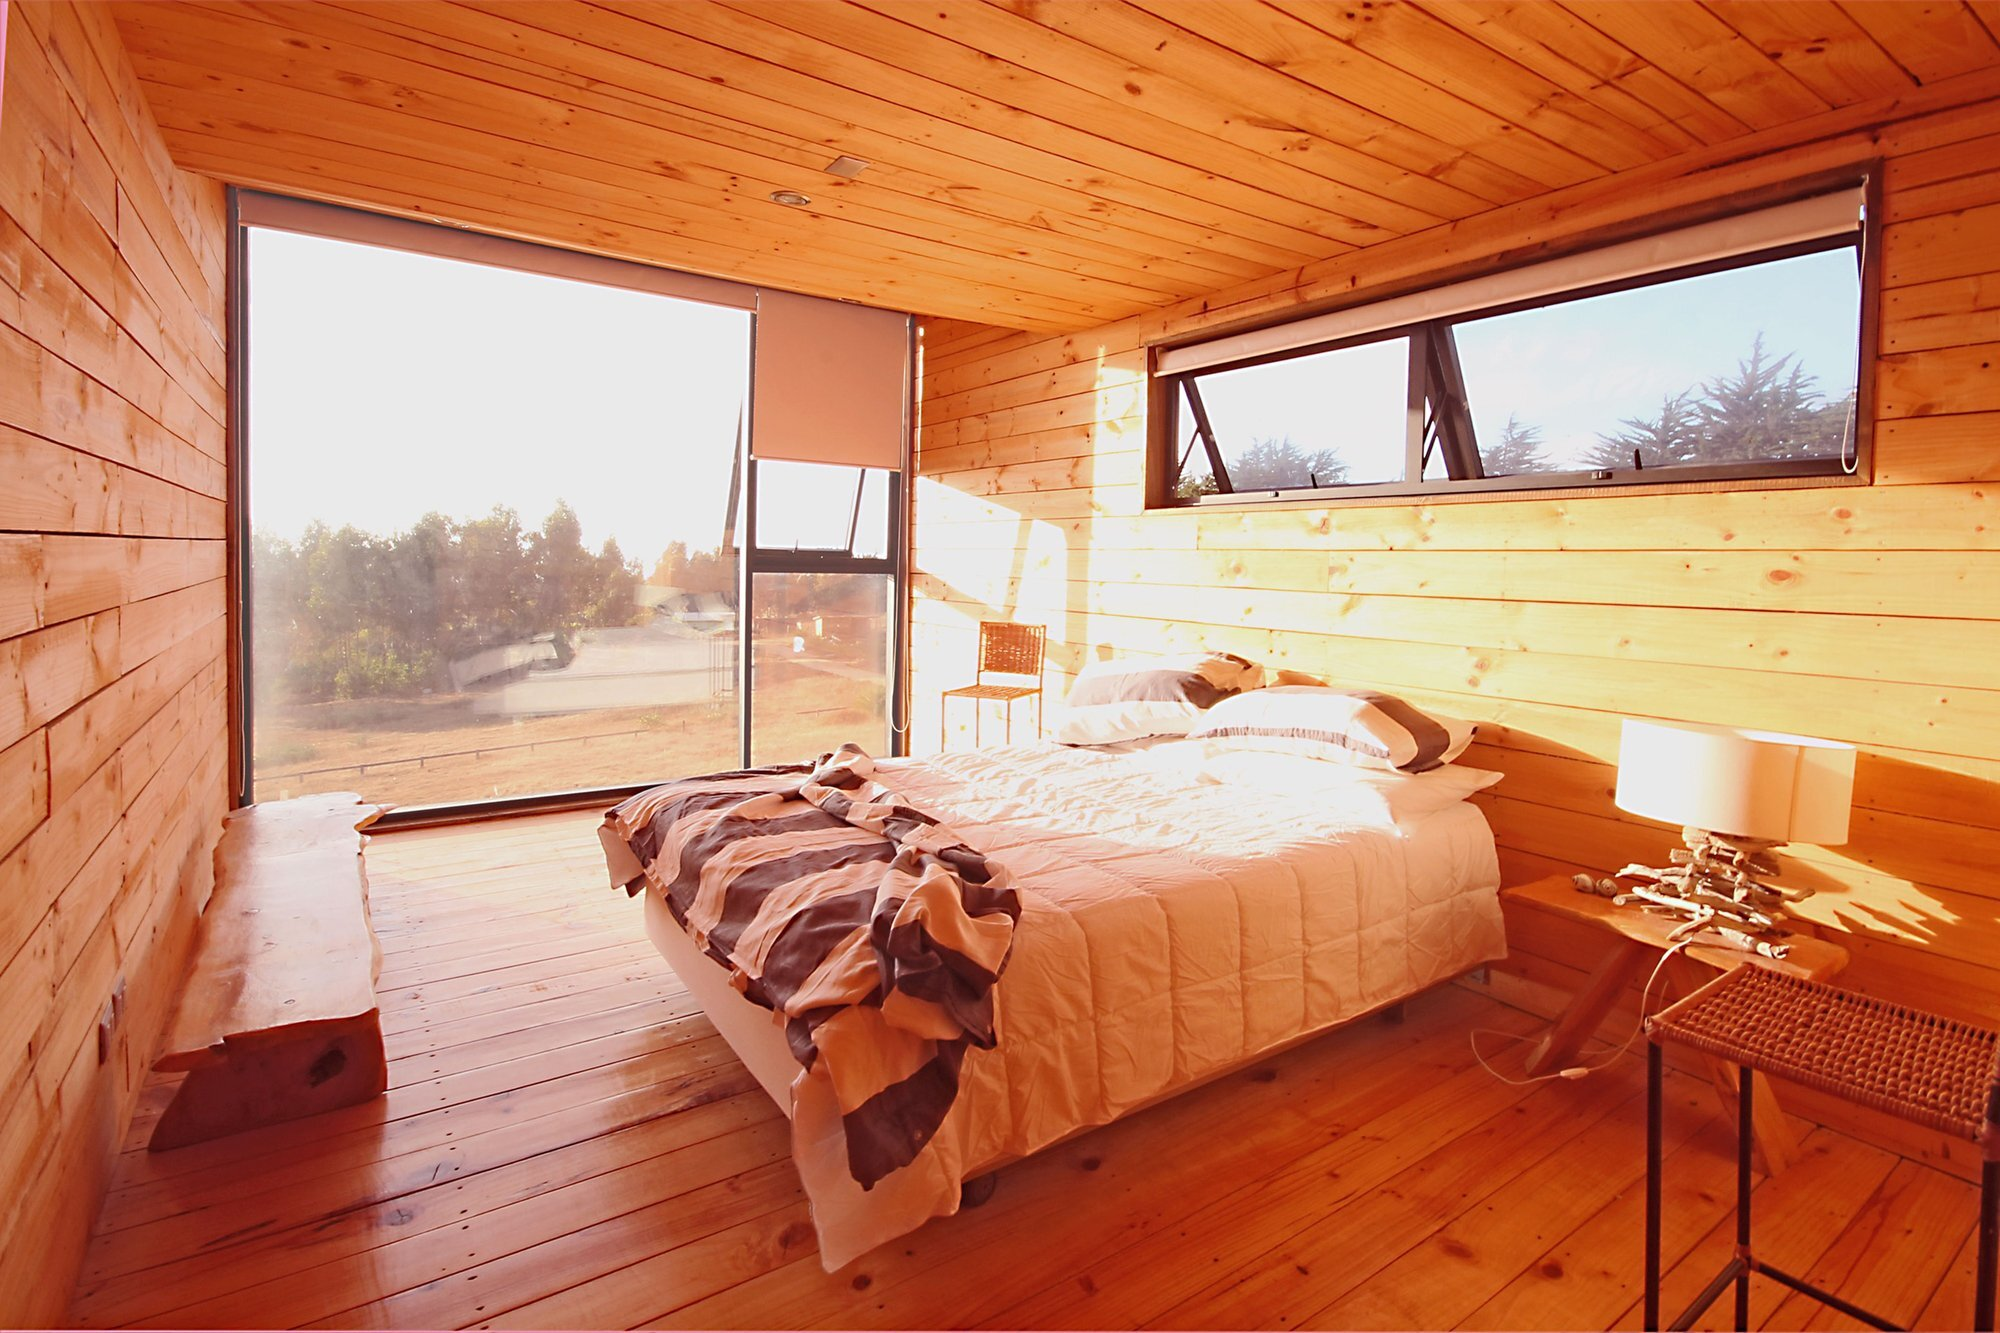 H House - PAARQ Arquitectos - Chile - Bedroom - Humble Homes